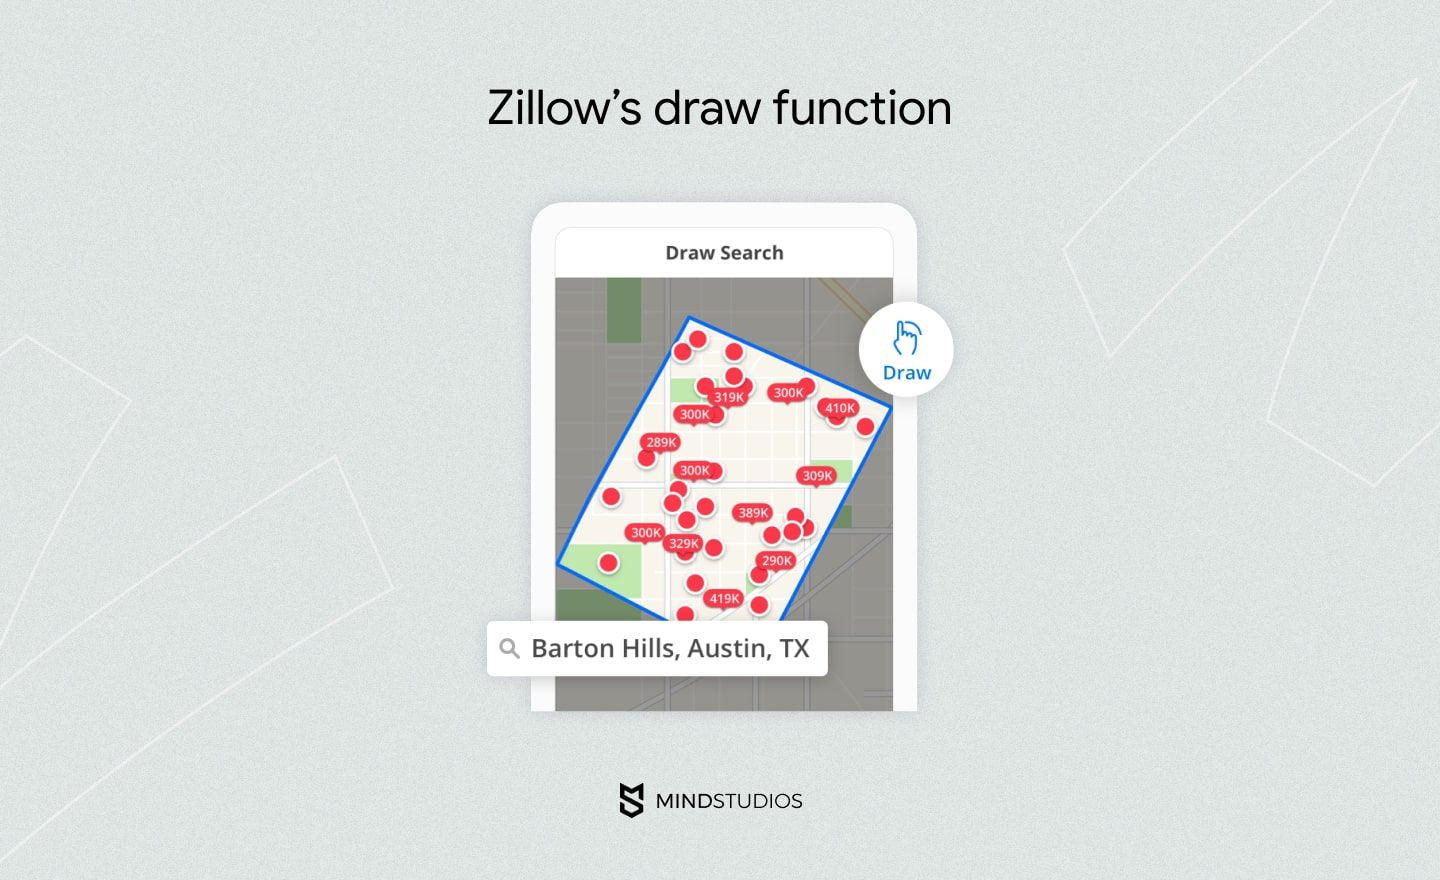 Zillow's draw function